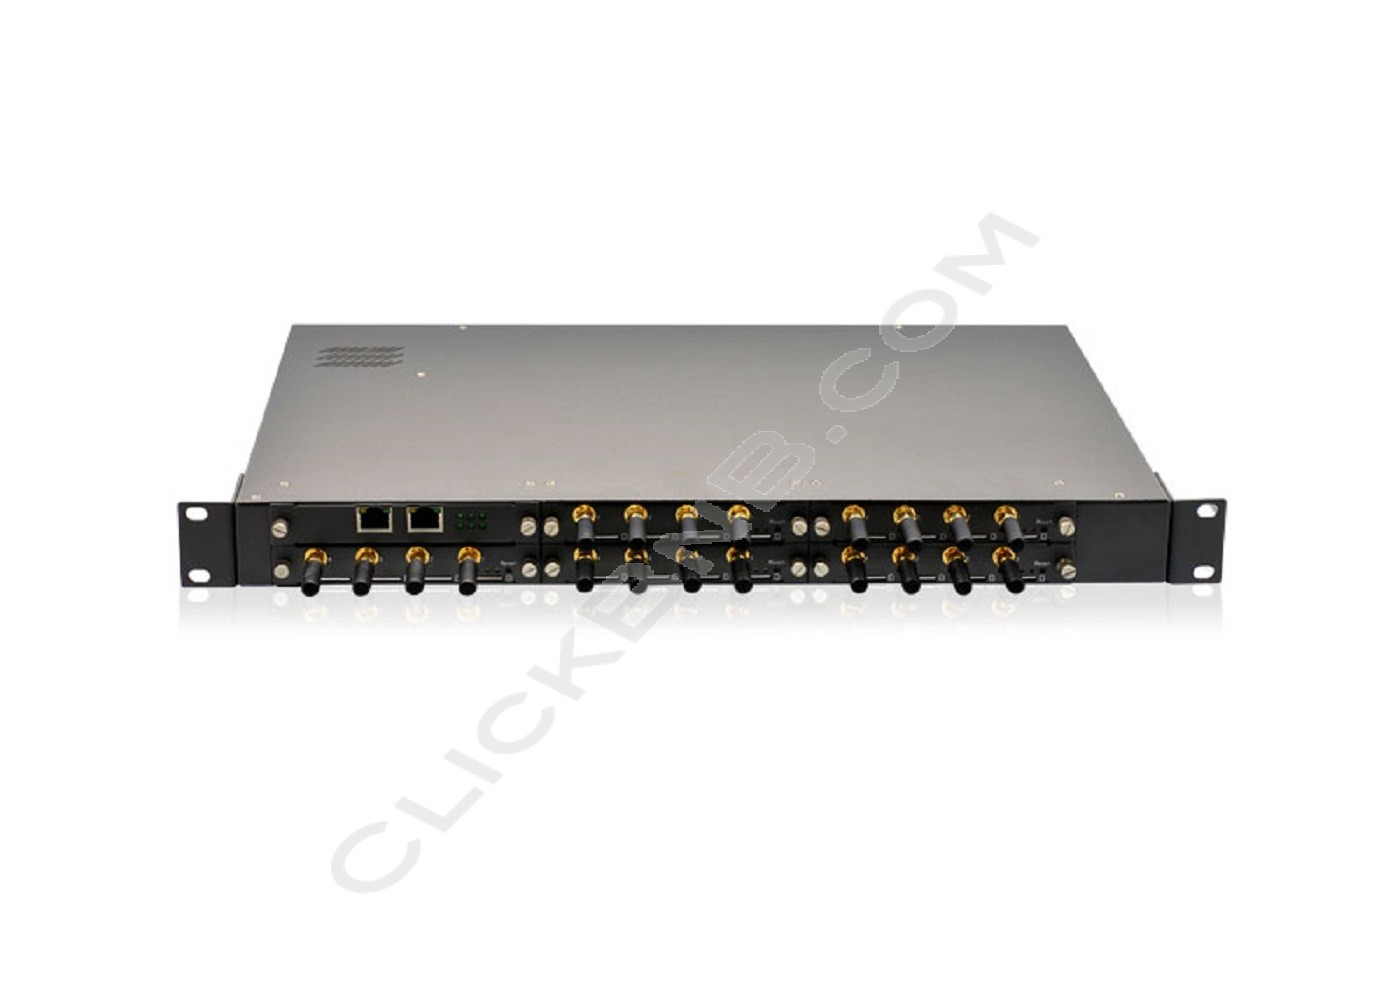 OpenVox - VS-GW1600-4G - VoxStack - VoIP GSM Gateway 4 Channel